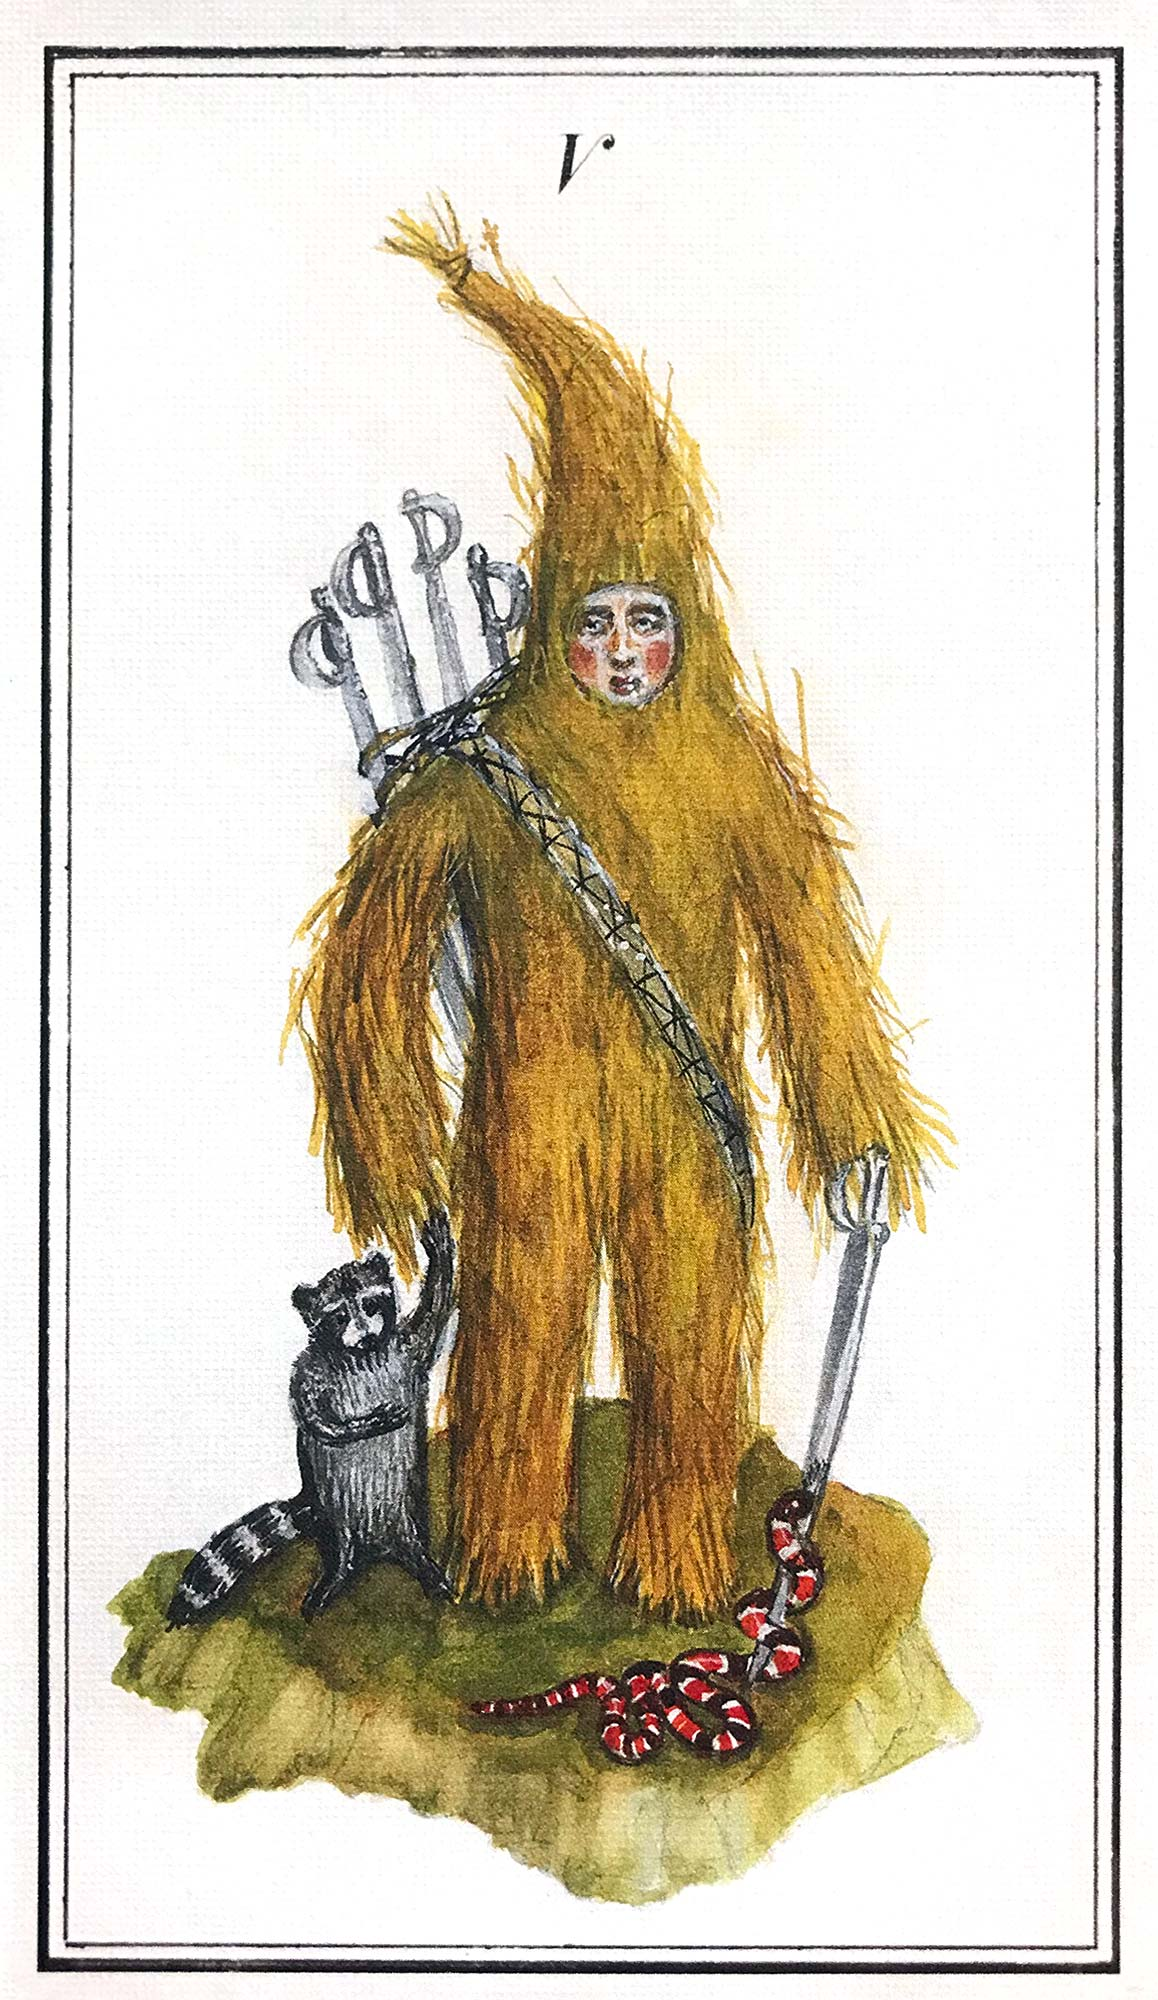 Carnival at the End of the World Tarot - The Hierophant